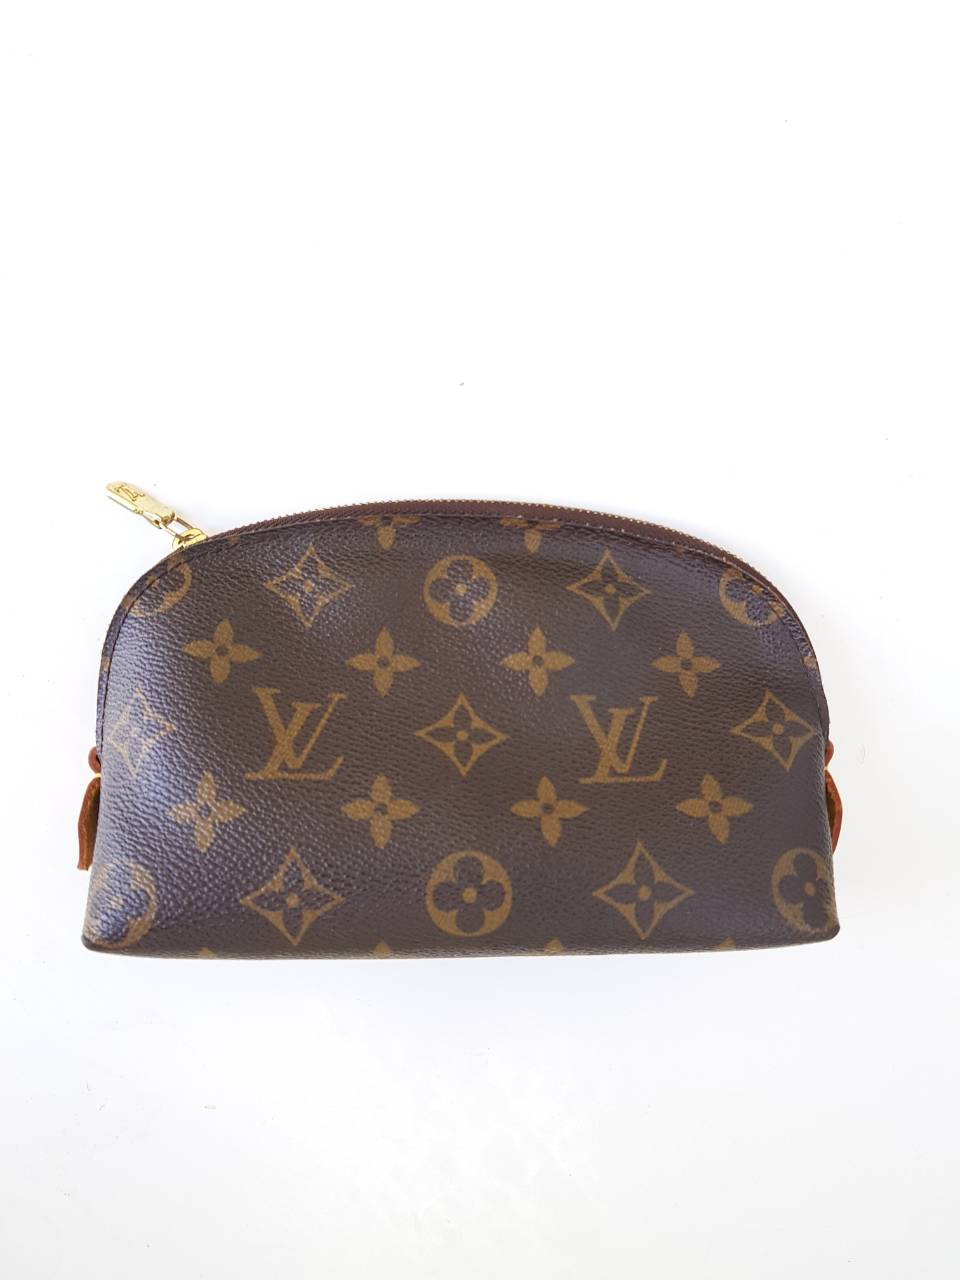 Authentic Louis Vuitton Cosmetic Pouch